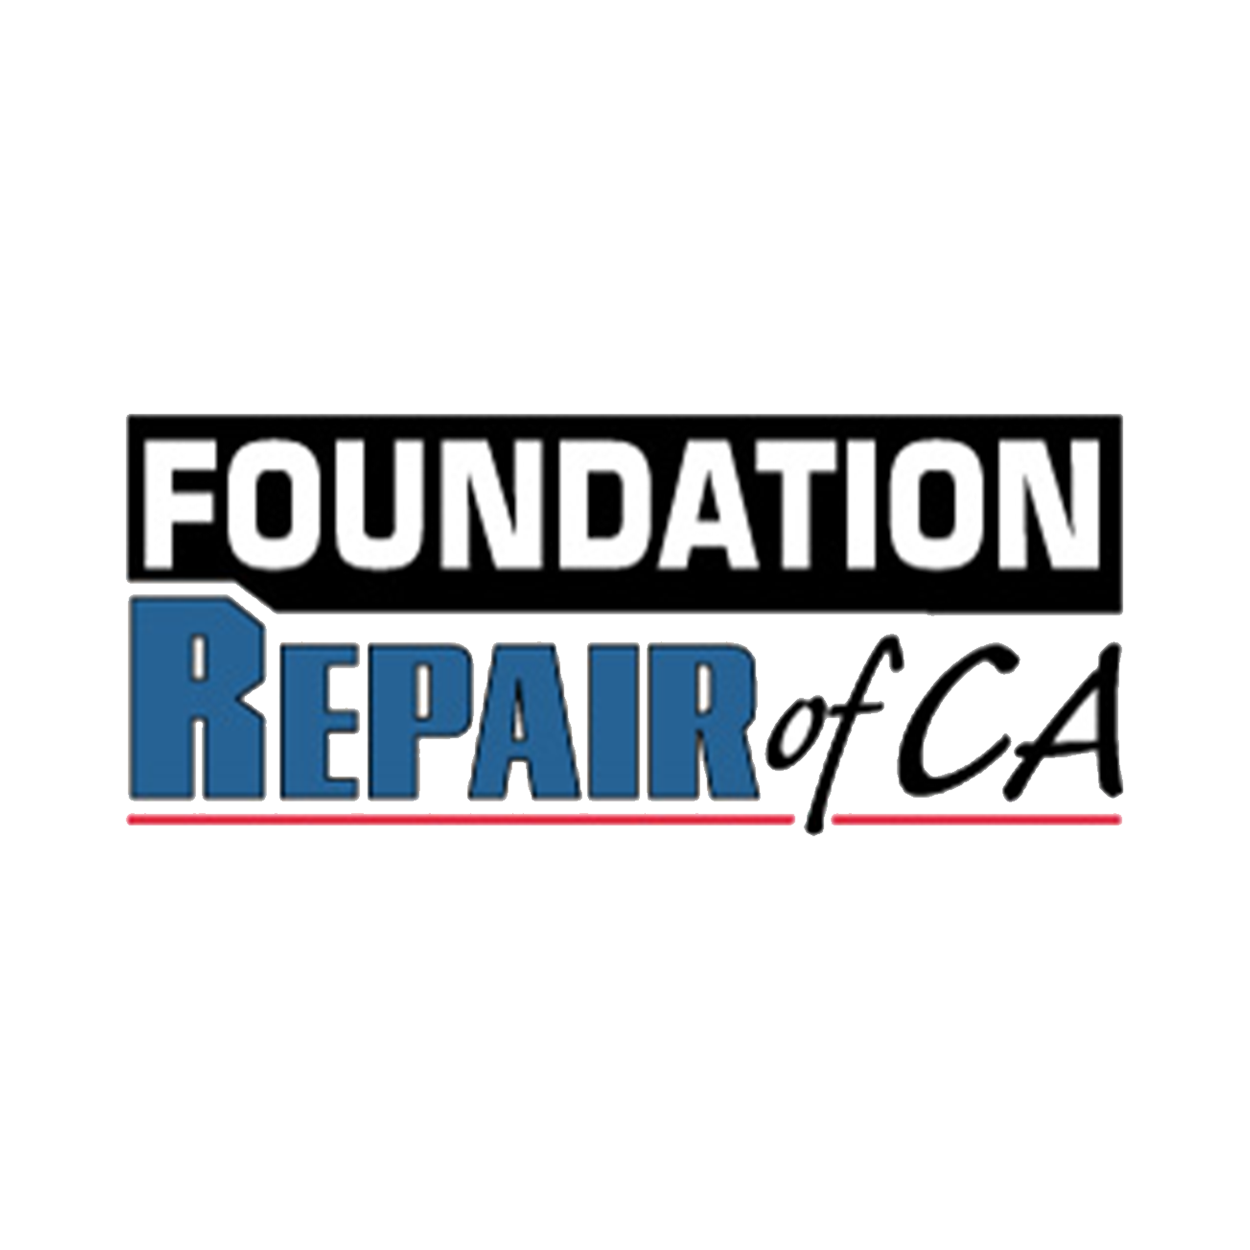 Foundation Repair of California - carefully review the business needs in the organization, effectively analyze both current and projected processes and provide implementation, training and support services for end users and Google Business, computer imaging, migrations and rollouts.